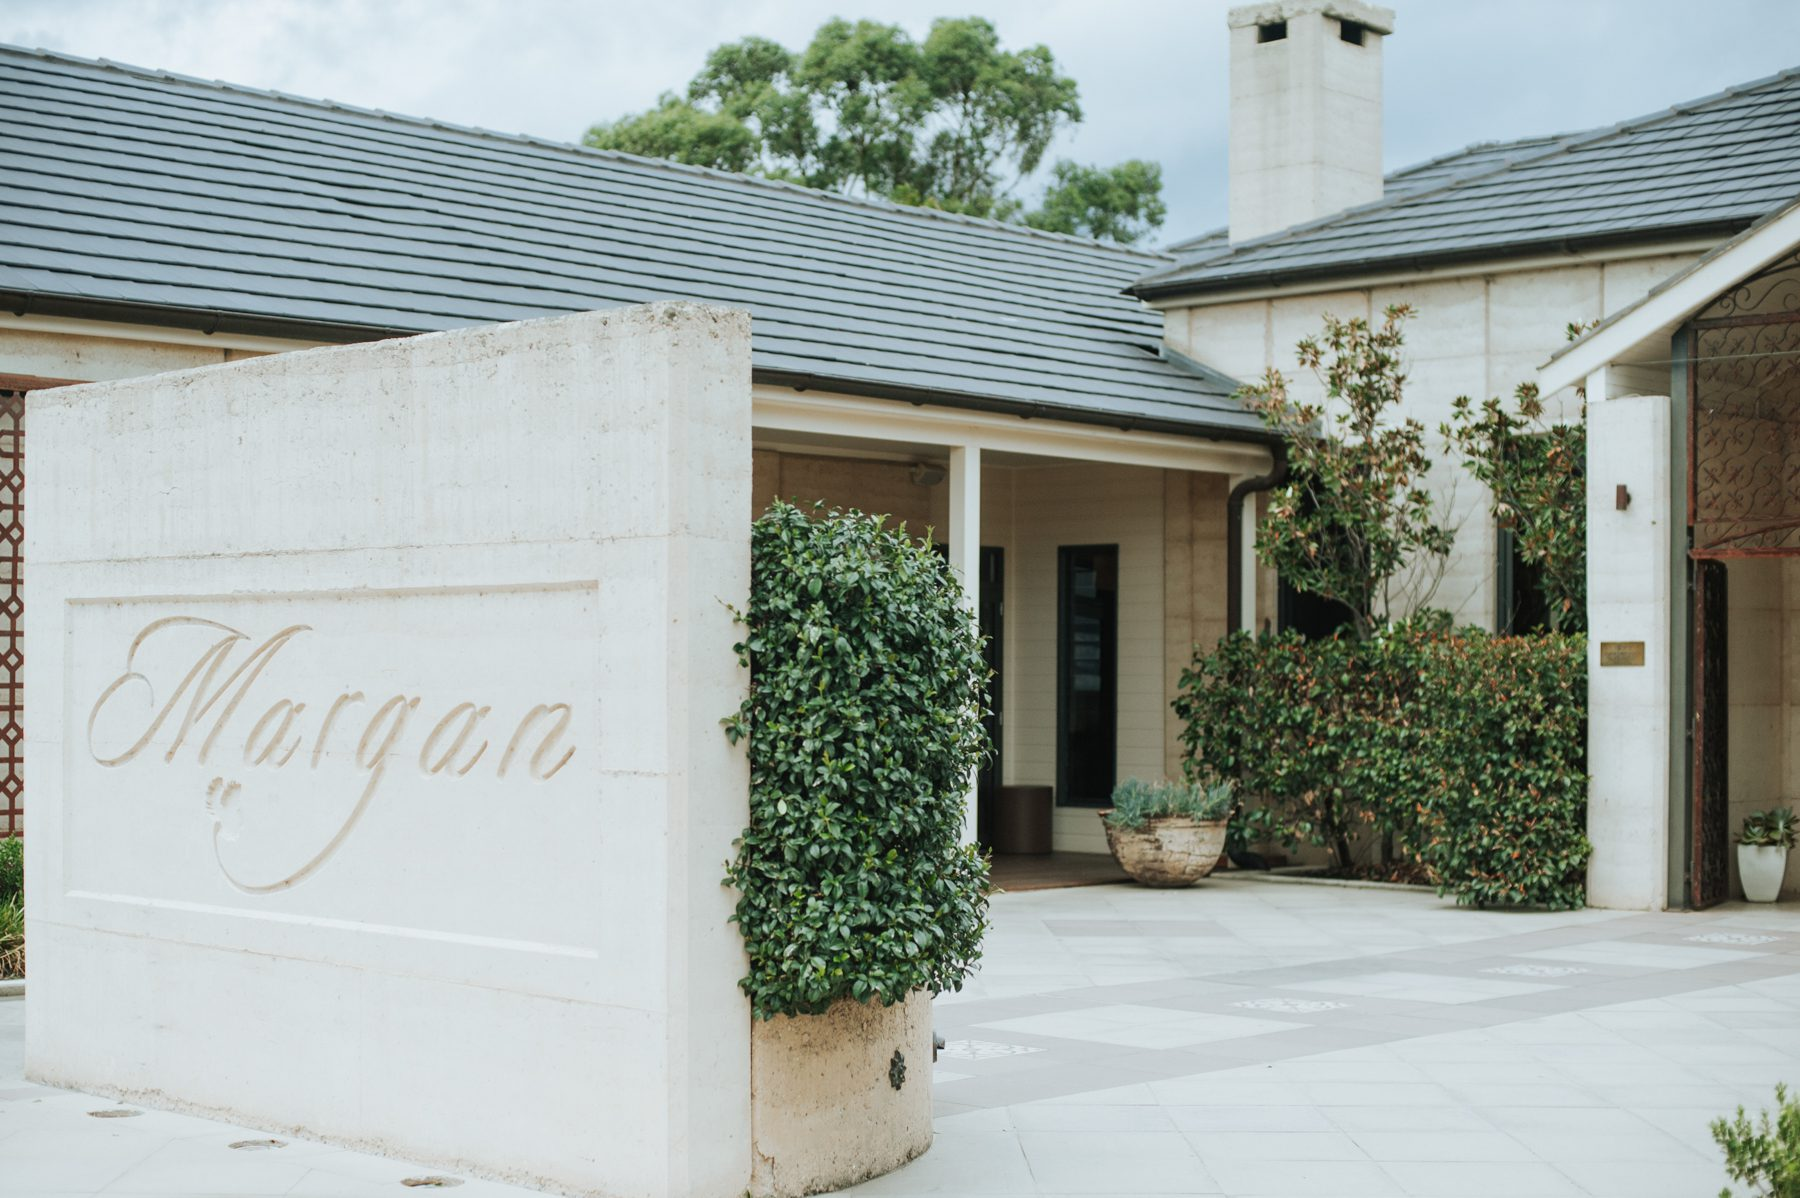 Our rammed earth courtyard entrance welcomes guests to our award-winning cellar door and hatted restaurant